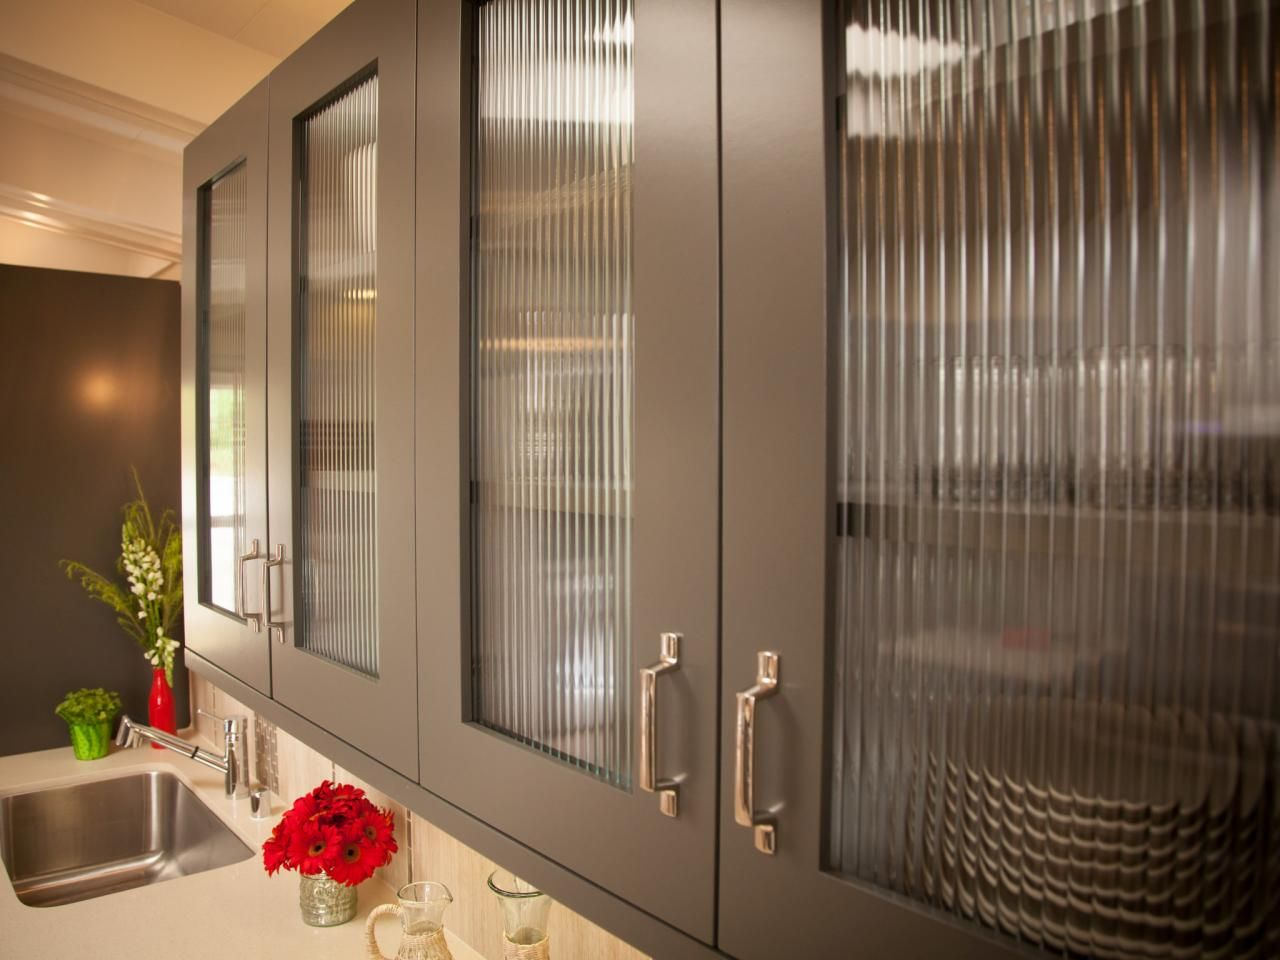 Kitchen cabinet doors greenville sc - The Glass Doors On These Gray Kitchen Cabinets Lend A Modern Feel To This Kitchen